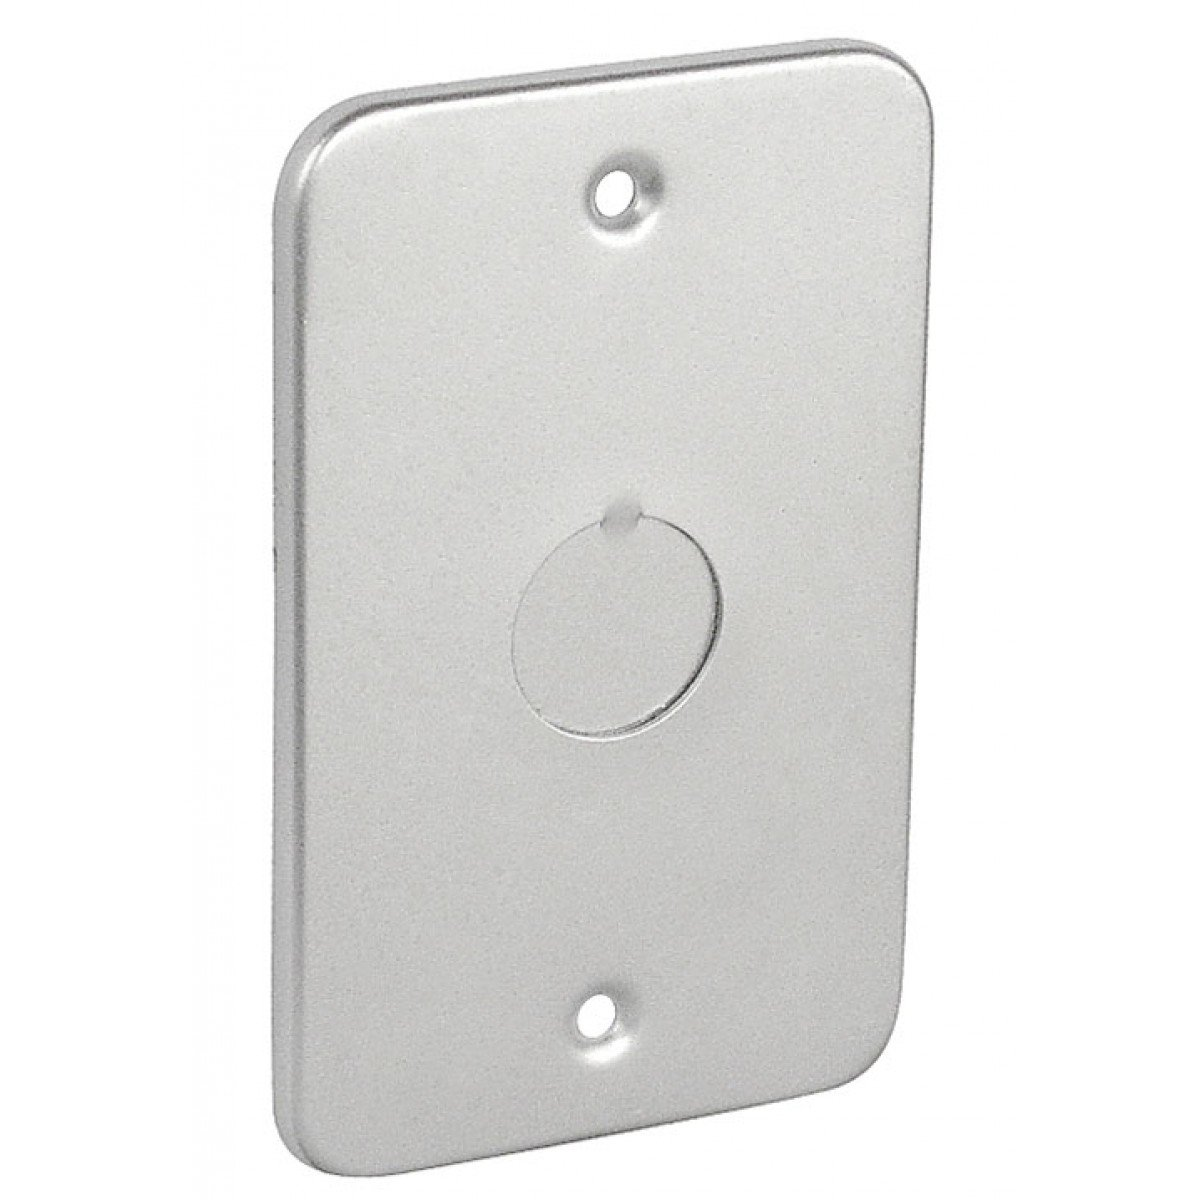 5 Pcs, Oversized 4-1/8 In. Long x 2-1/2 In. Wide x 1-7/8 In. Deep, Handy Box Cover w/1/2 In. Conduit Knockout, Zinc Plated Steel for Convenience Outlets, Switches & Small Junction Boxes